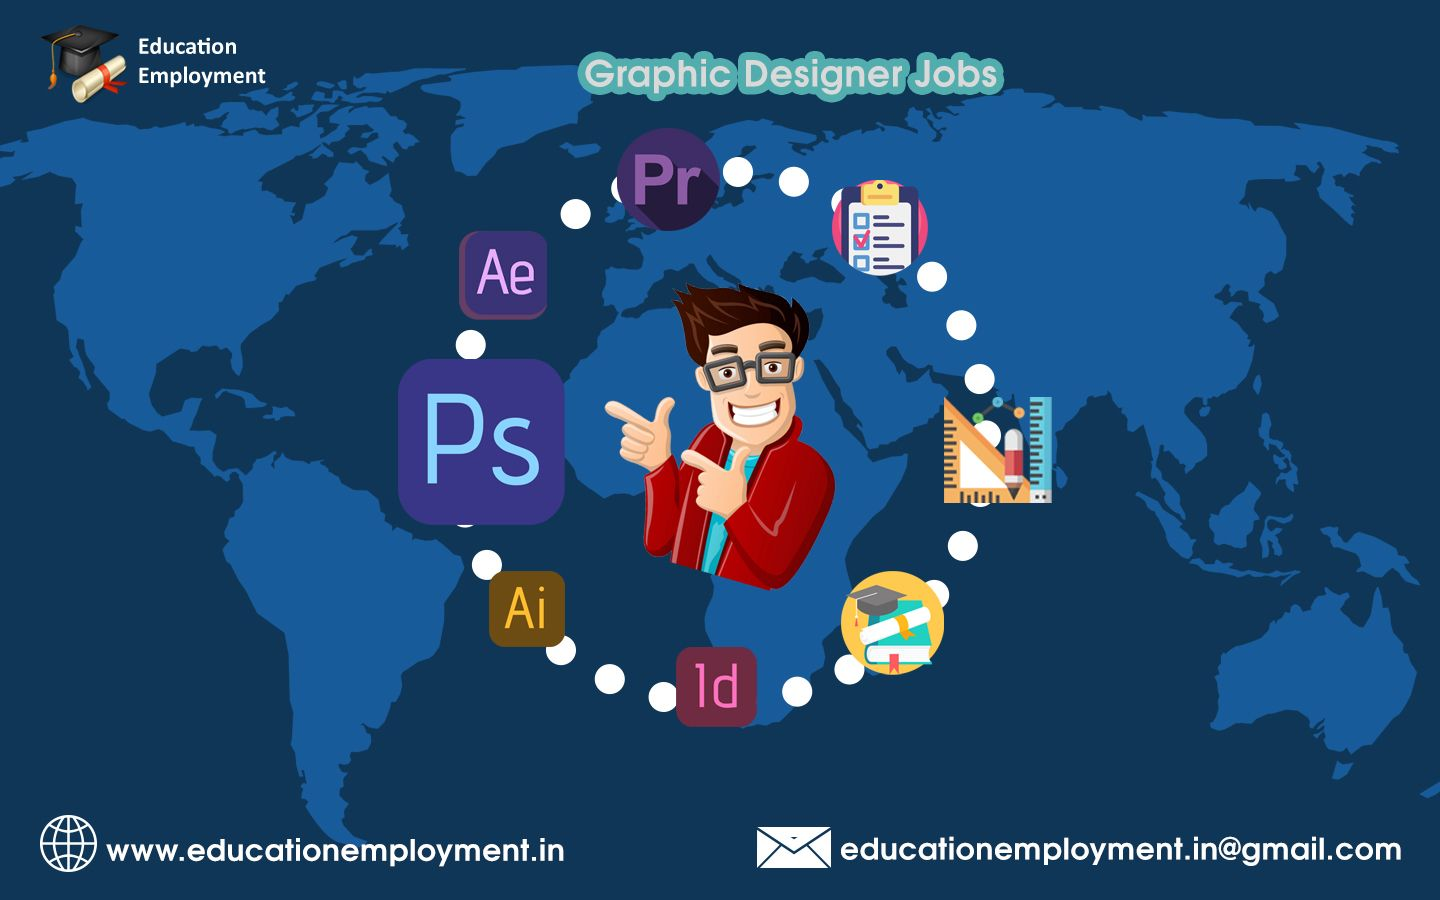 Explore Your Future through EducationEmployment App. Join